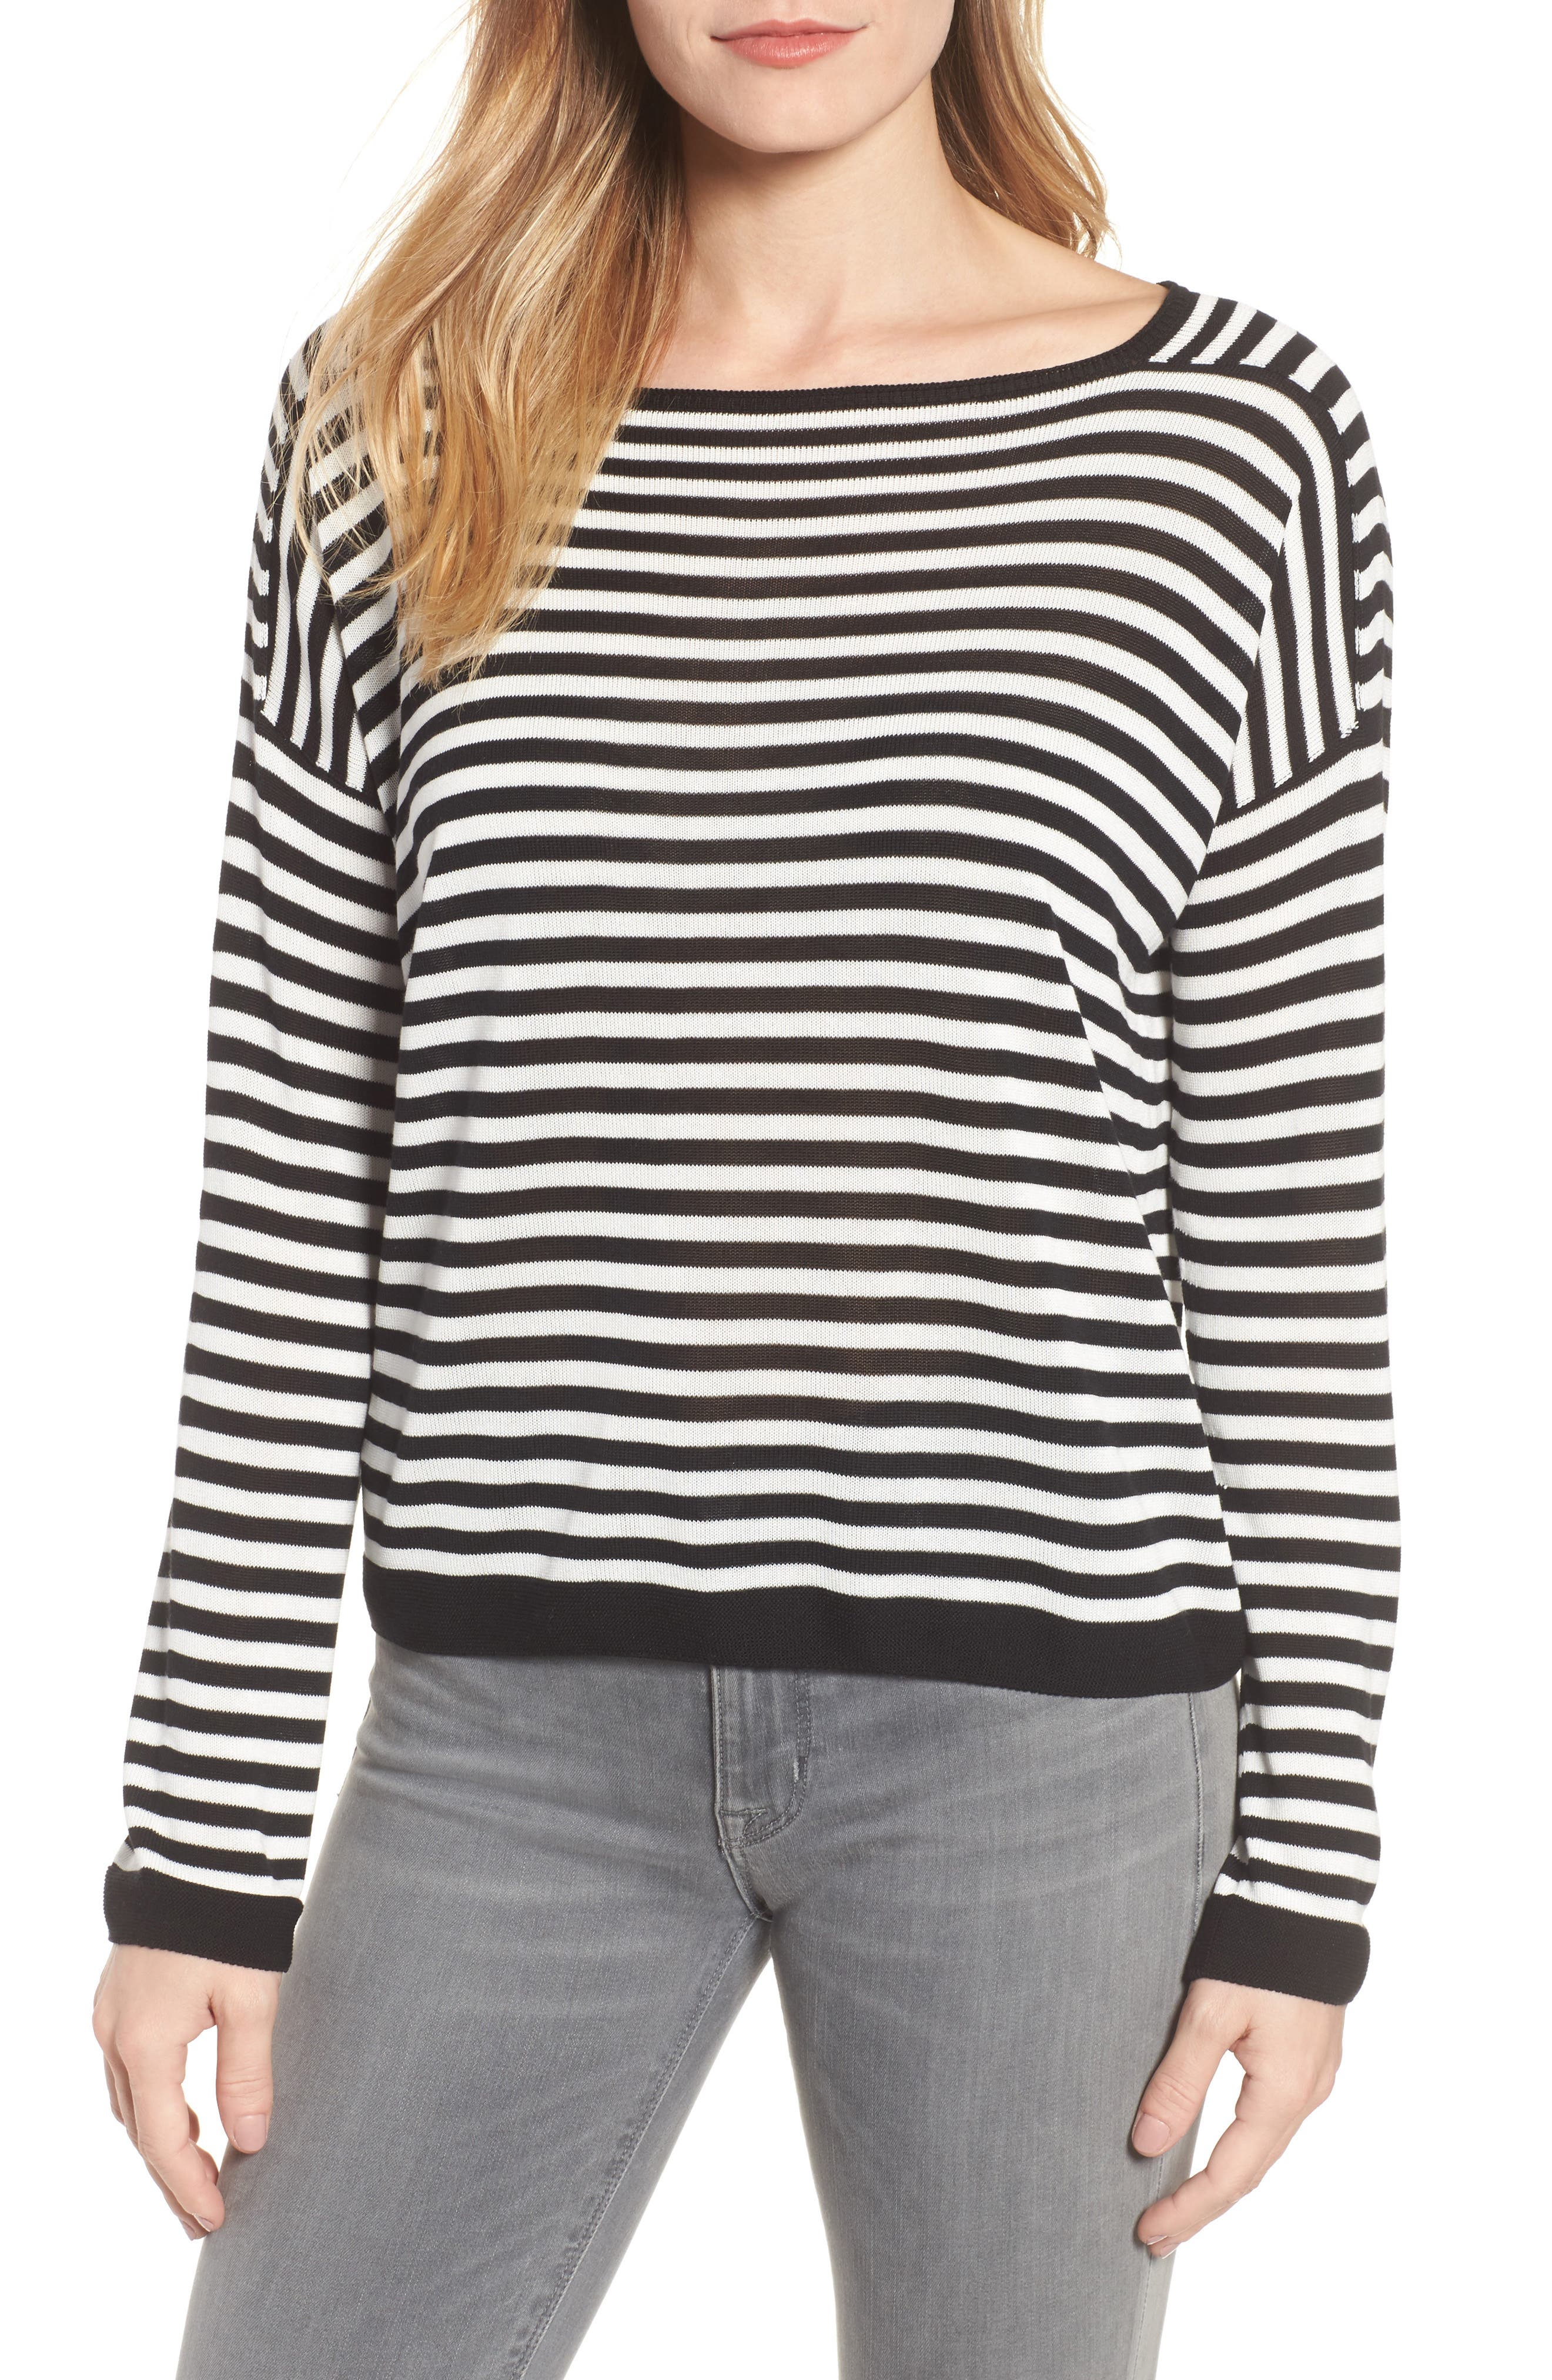 Stripe Tencel<sup>®</sup> Lyocell Knit Sweater,                         Main,                         color, Black/ Soft White